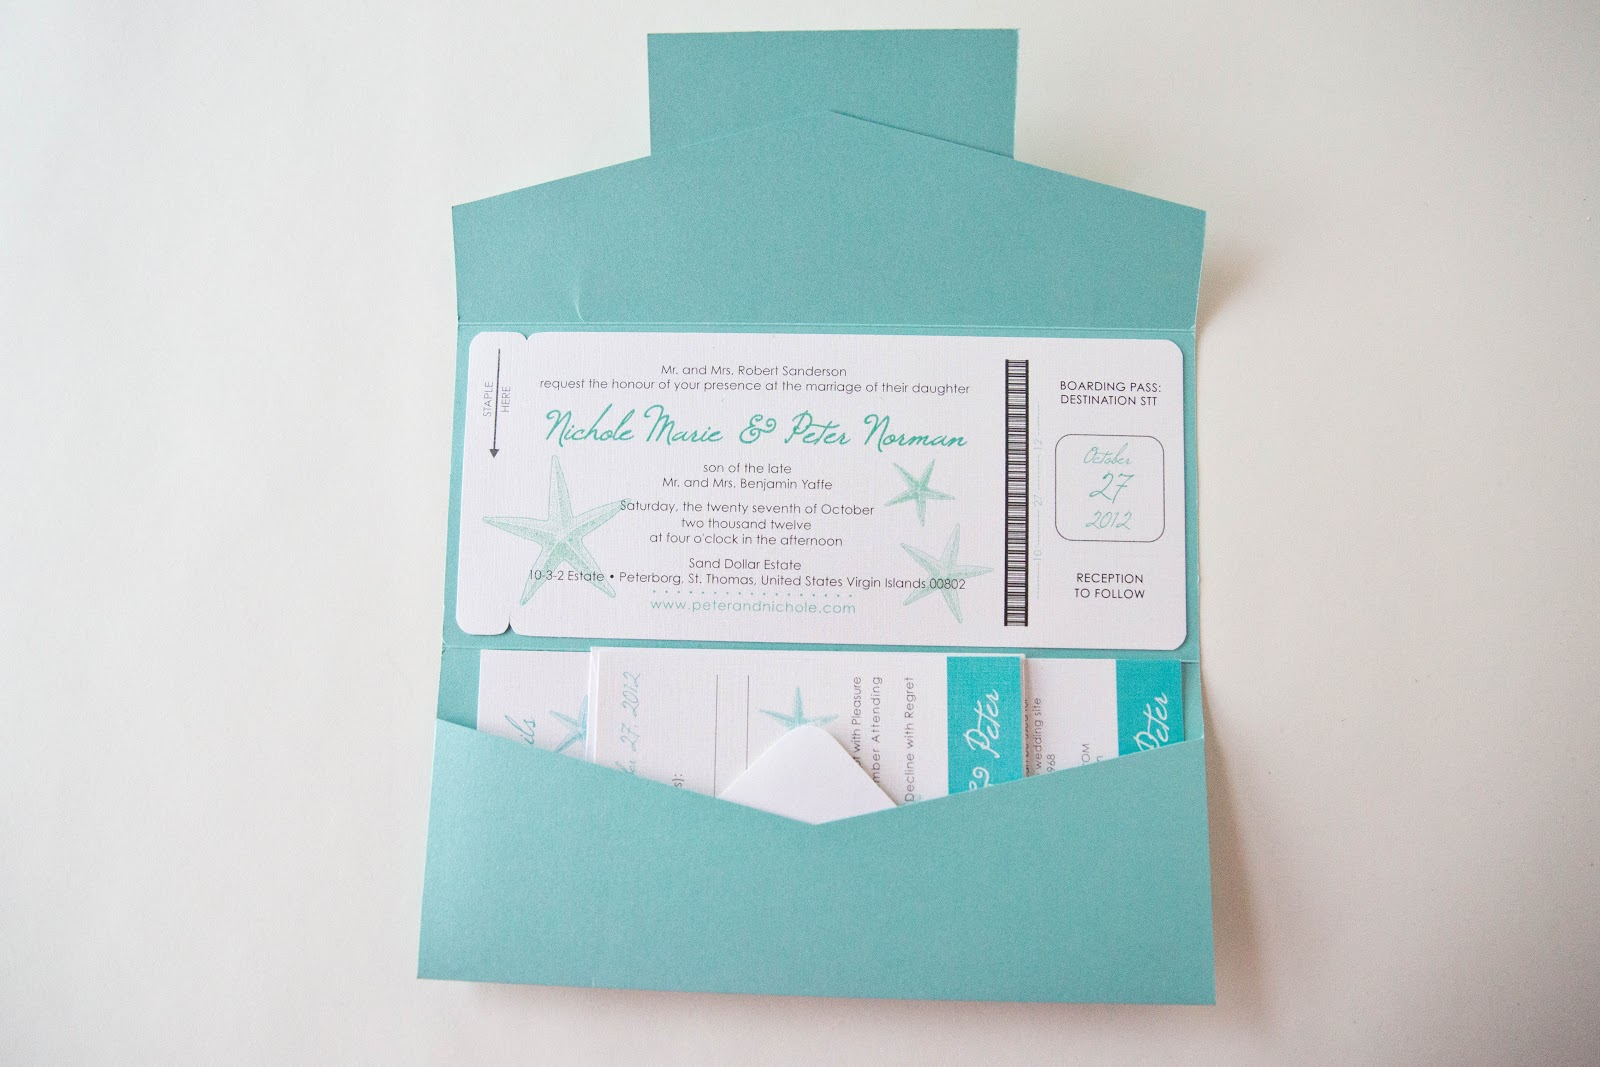 Passport Pocket Style Invitations • Destination Wedding ...